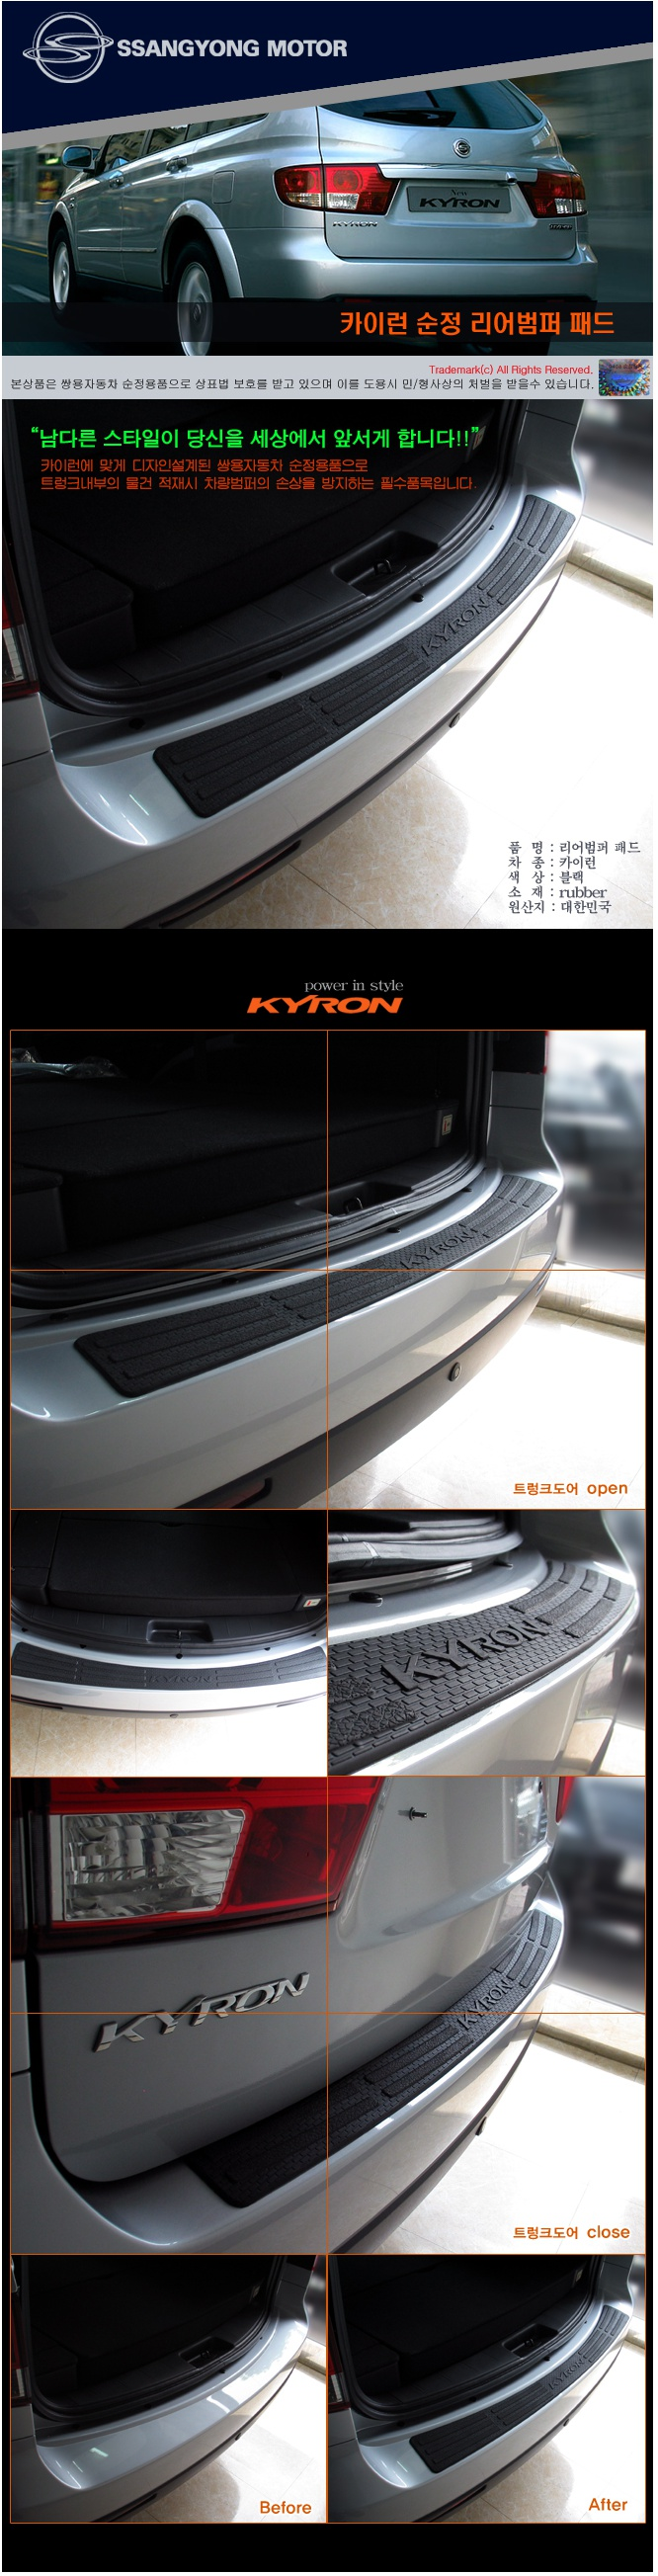 OEM Genuine Parts Rear Bumper Pad Garnish Cover For SSANGYONG 2005-2013 Kyron